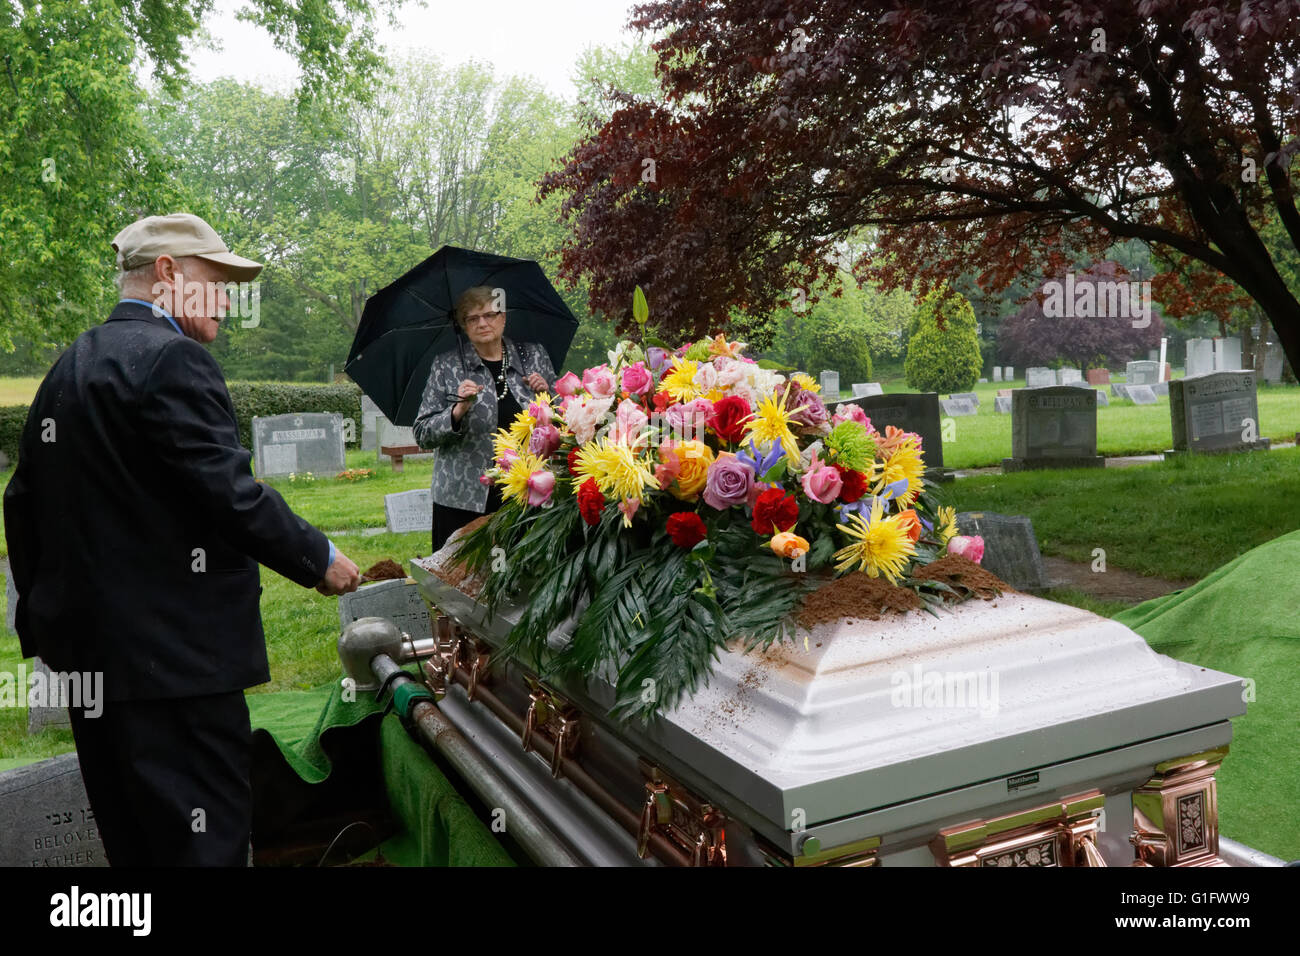 During a jewish funeral in upper darby pennsylvania a man places a during a jewish funeral in upper darby pennsylvania a man places a shovel full of dirt on the coffin izmirmasajfo